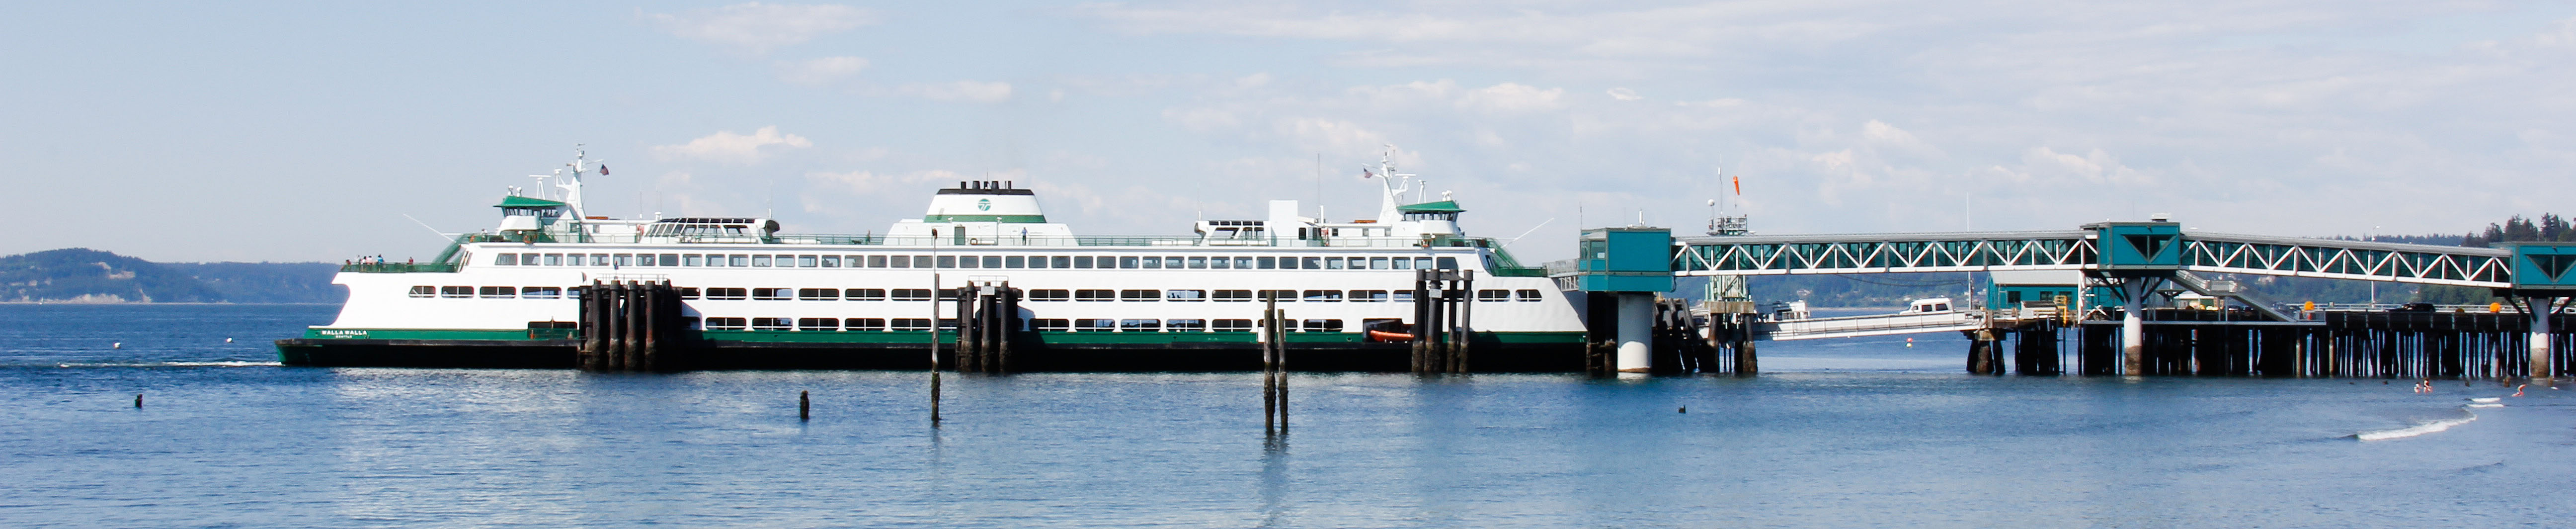 Photo of Edmonds Ferry, Edmonds, Washington